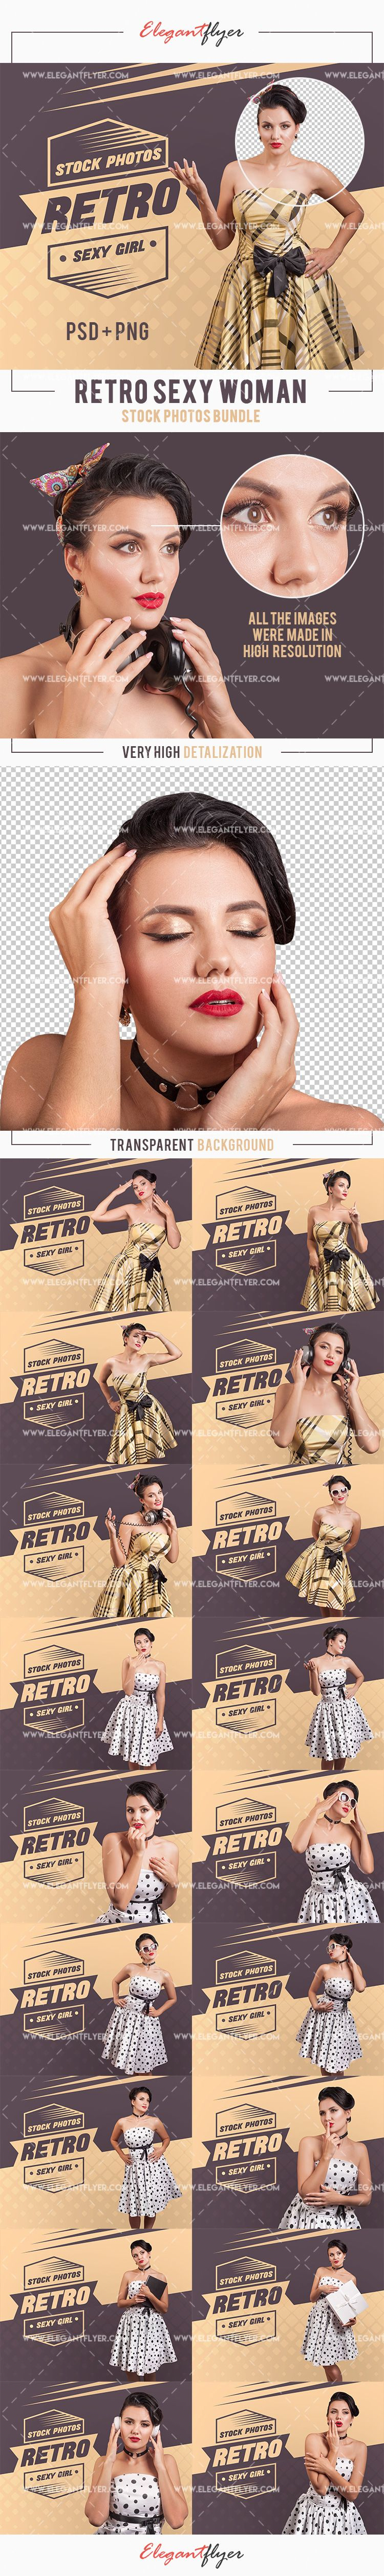 Free Stock Photos Bundle of Retro Sexy Woman